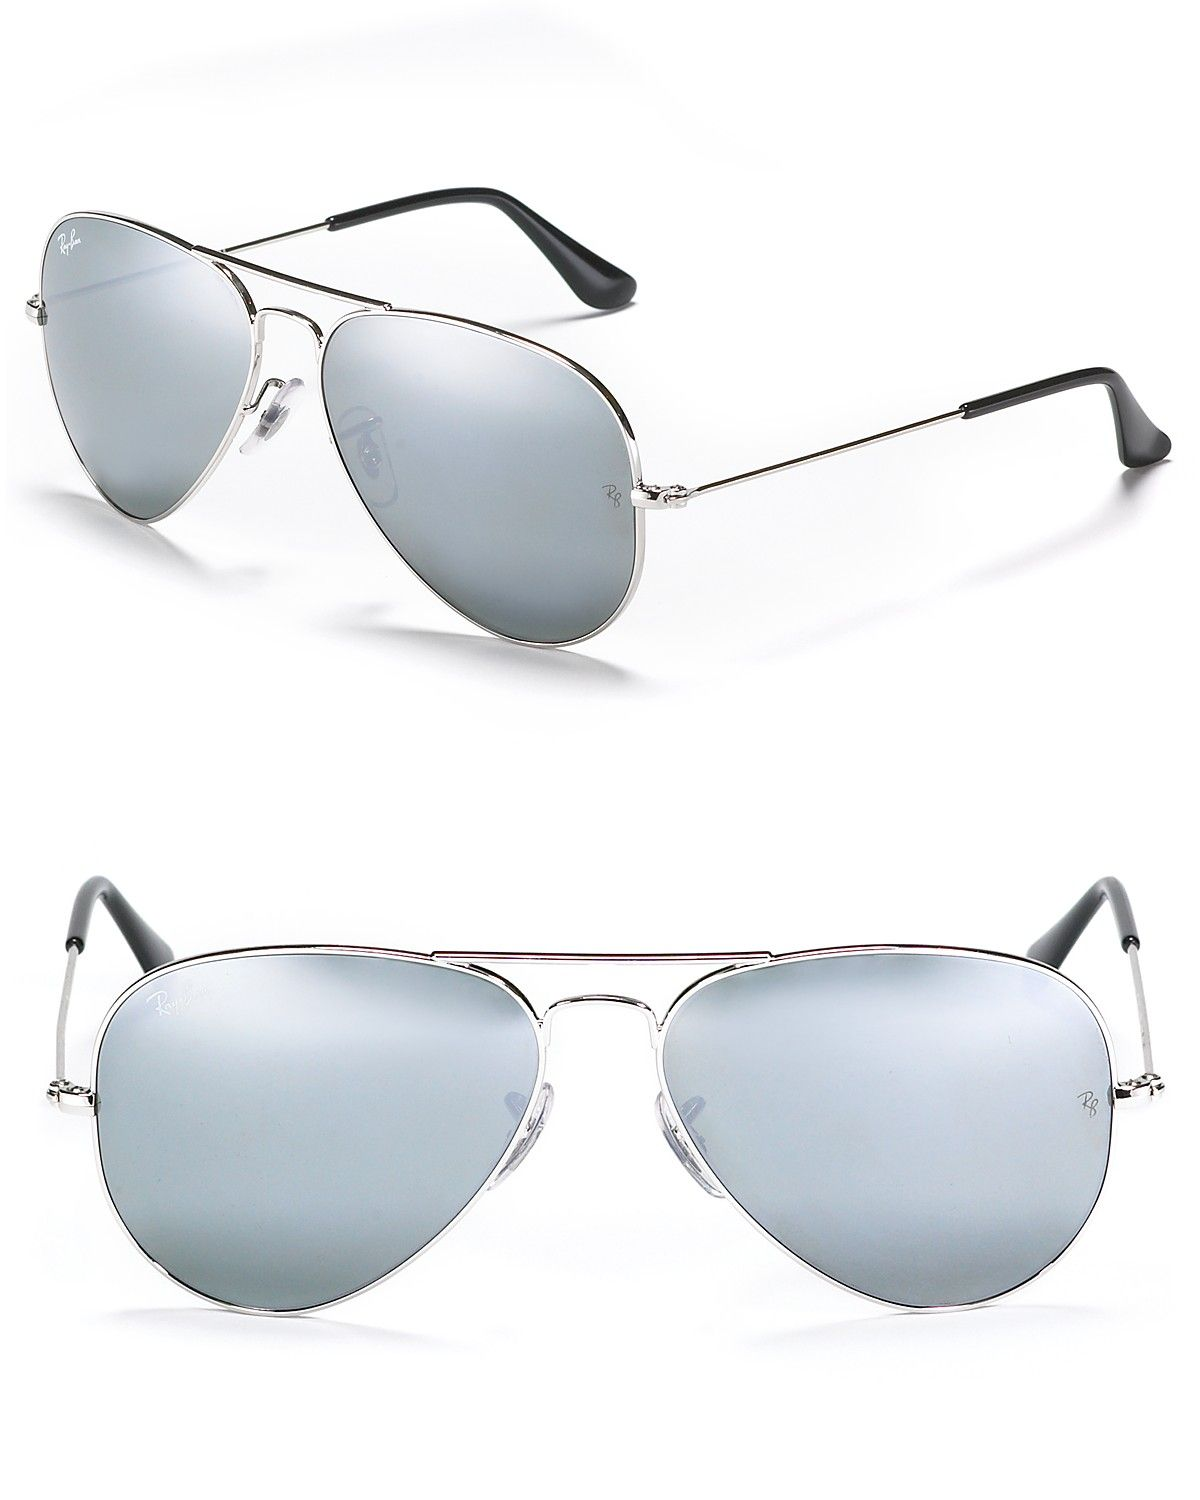 ray ban aviator silver mirror sunglasses  17 best images about mens sunglasses on pinterest